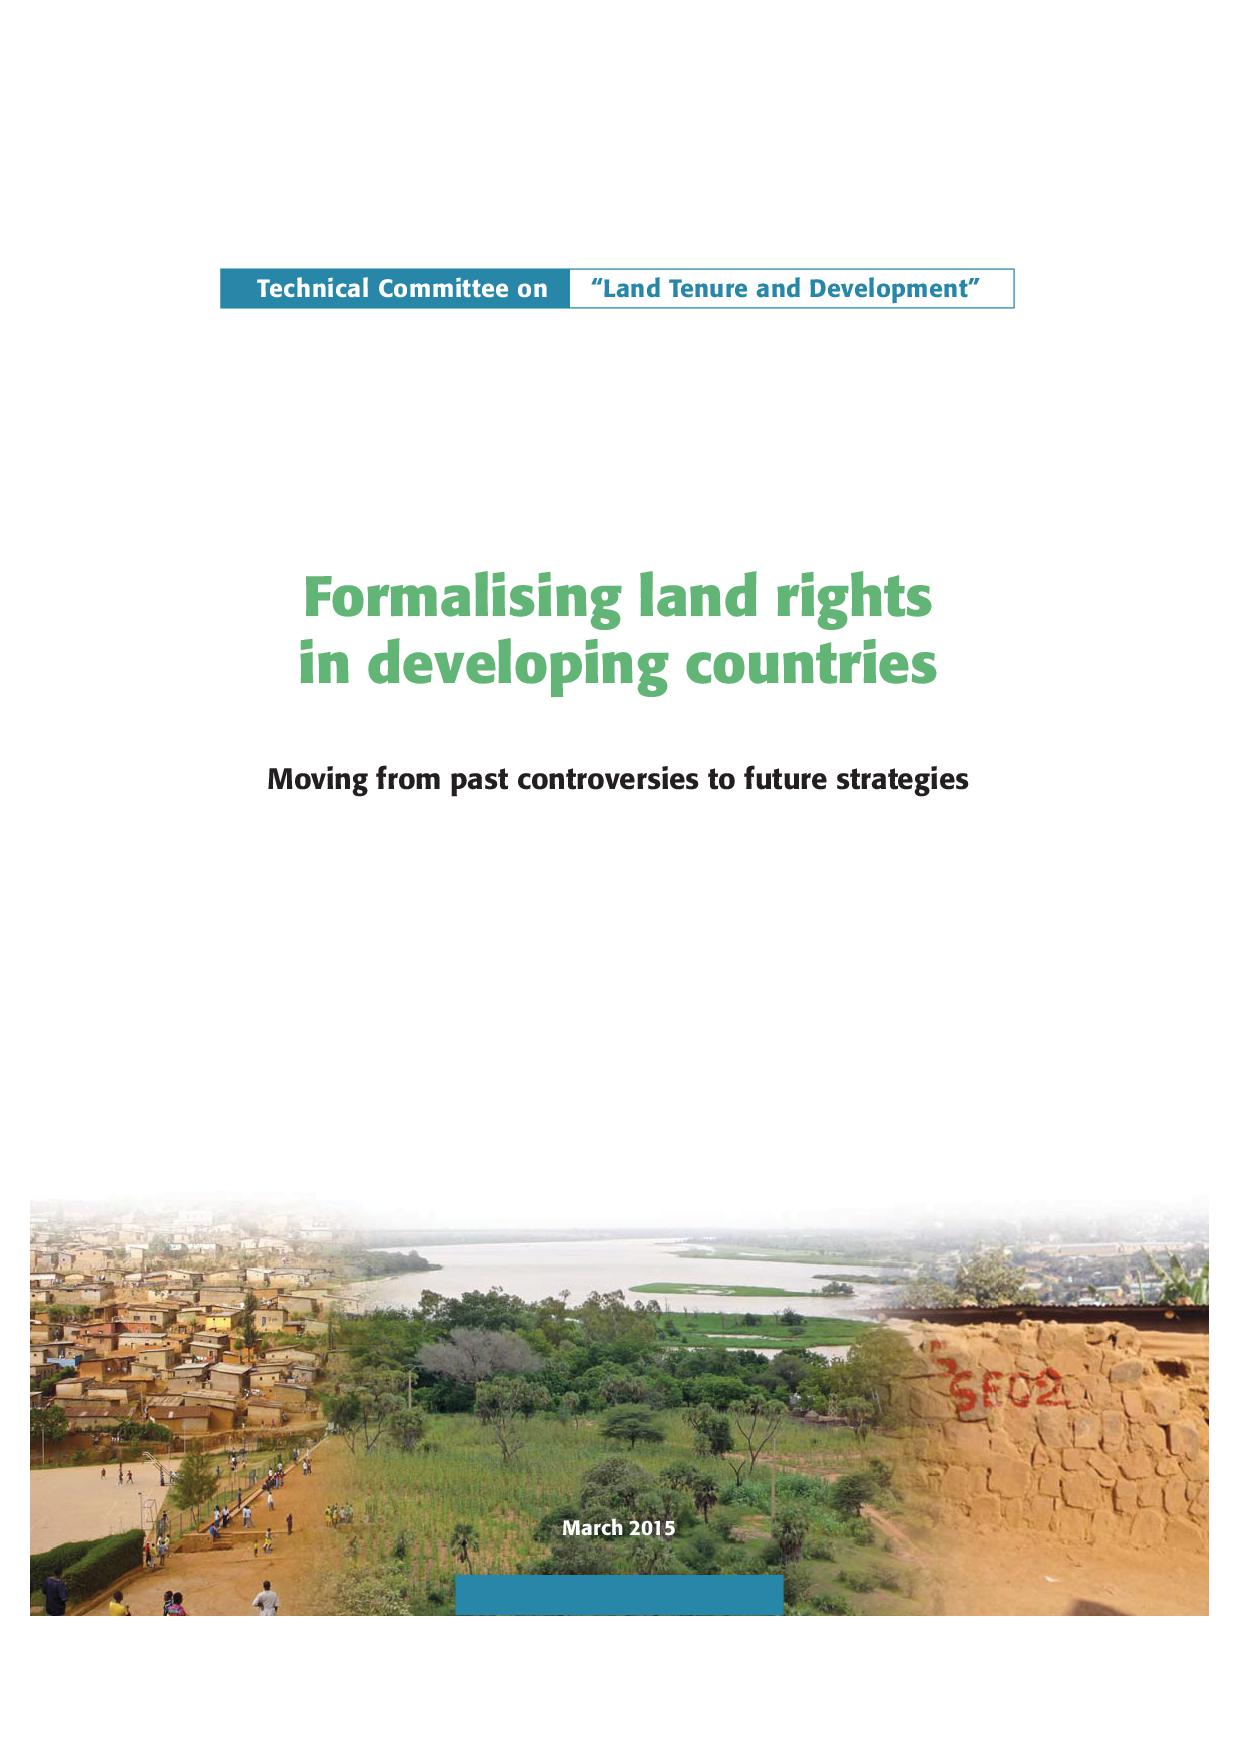 Formalising-land-rights_final-version-3